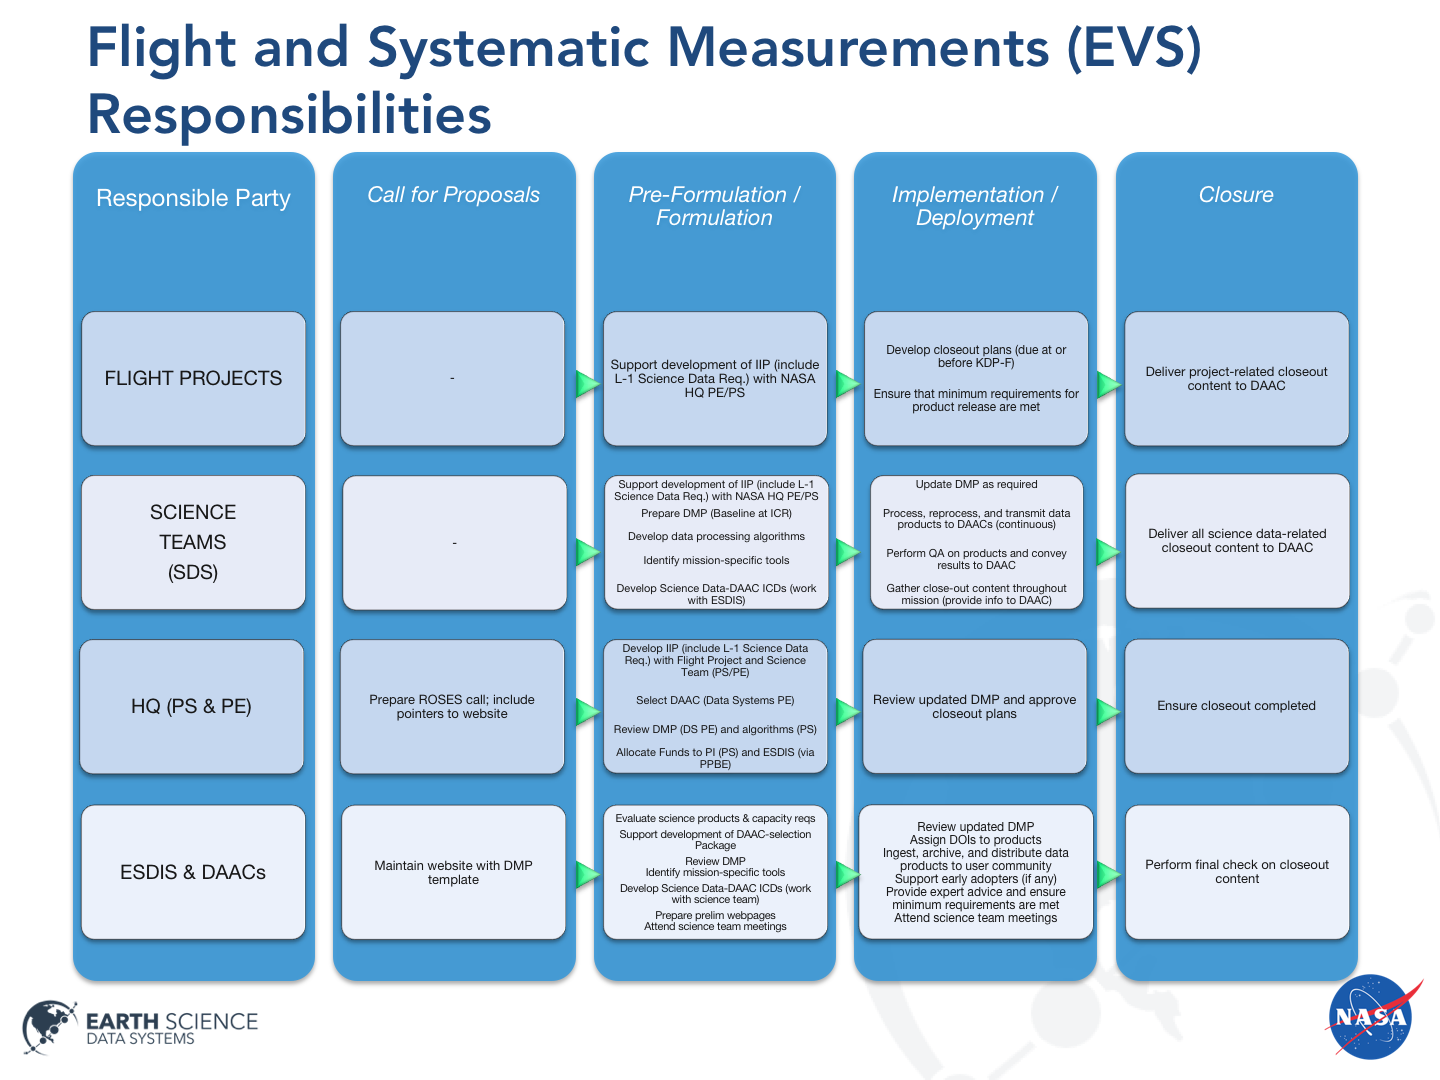 Flight and Systematic Measurements (EVS) Responsibilities